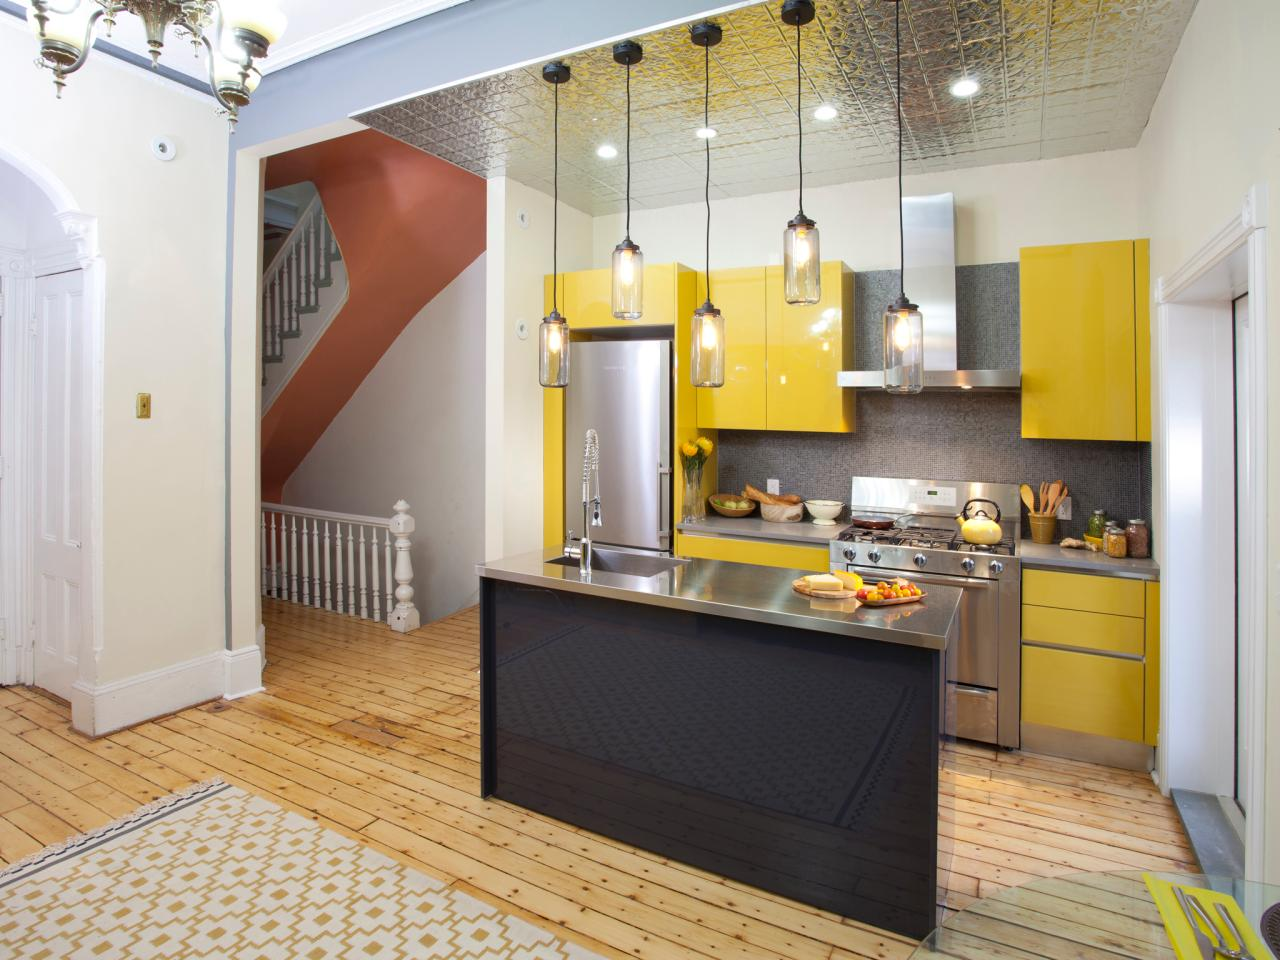 The Awesome Kitchen With Yellow Cabinets And Dark Small Kitchen Island On  Natural Hardwood Flooring